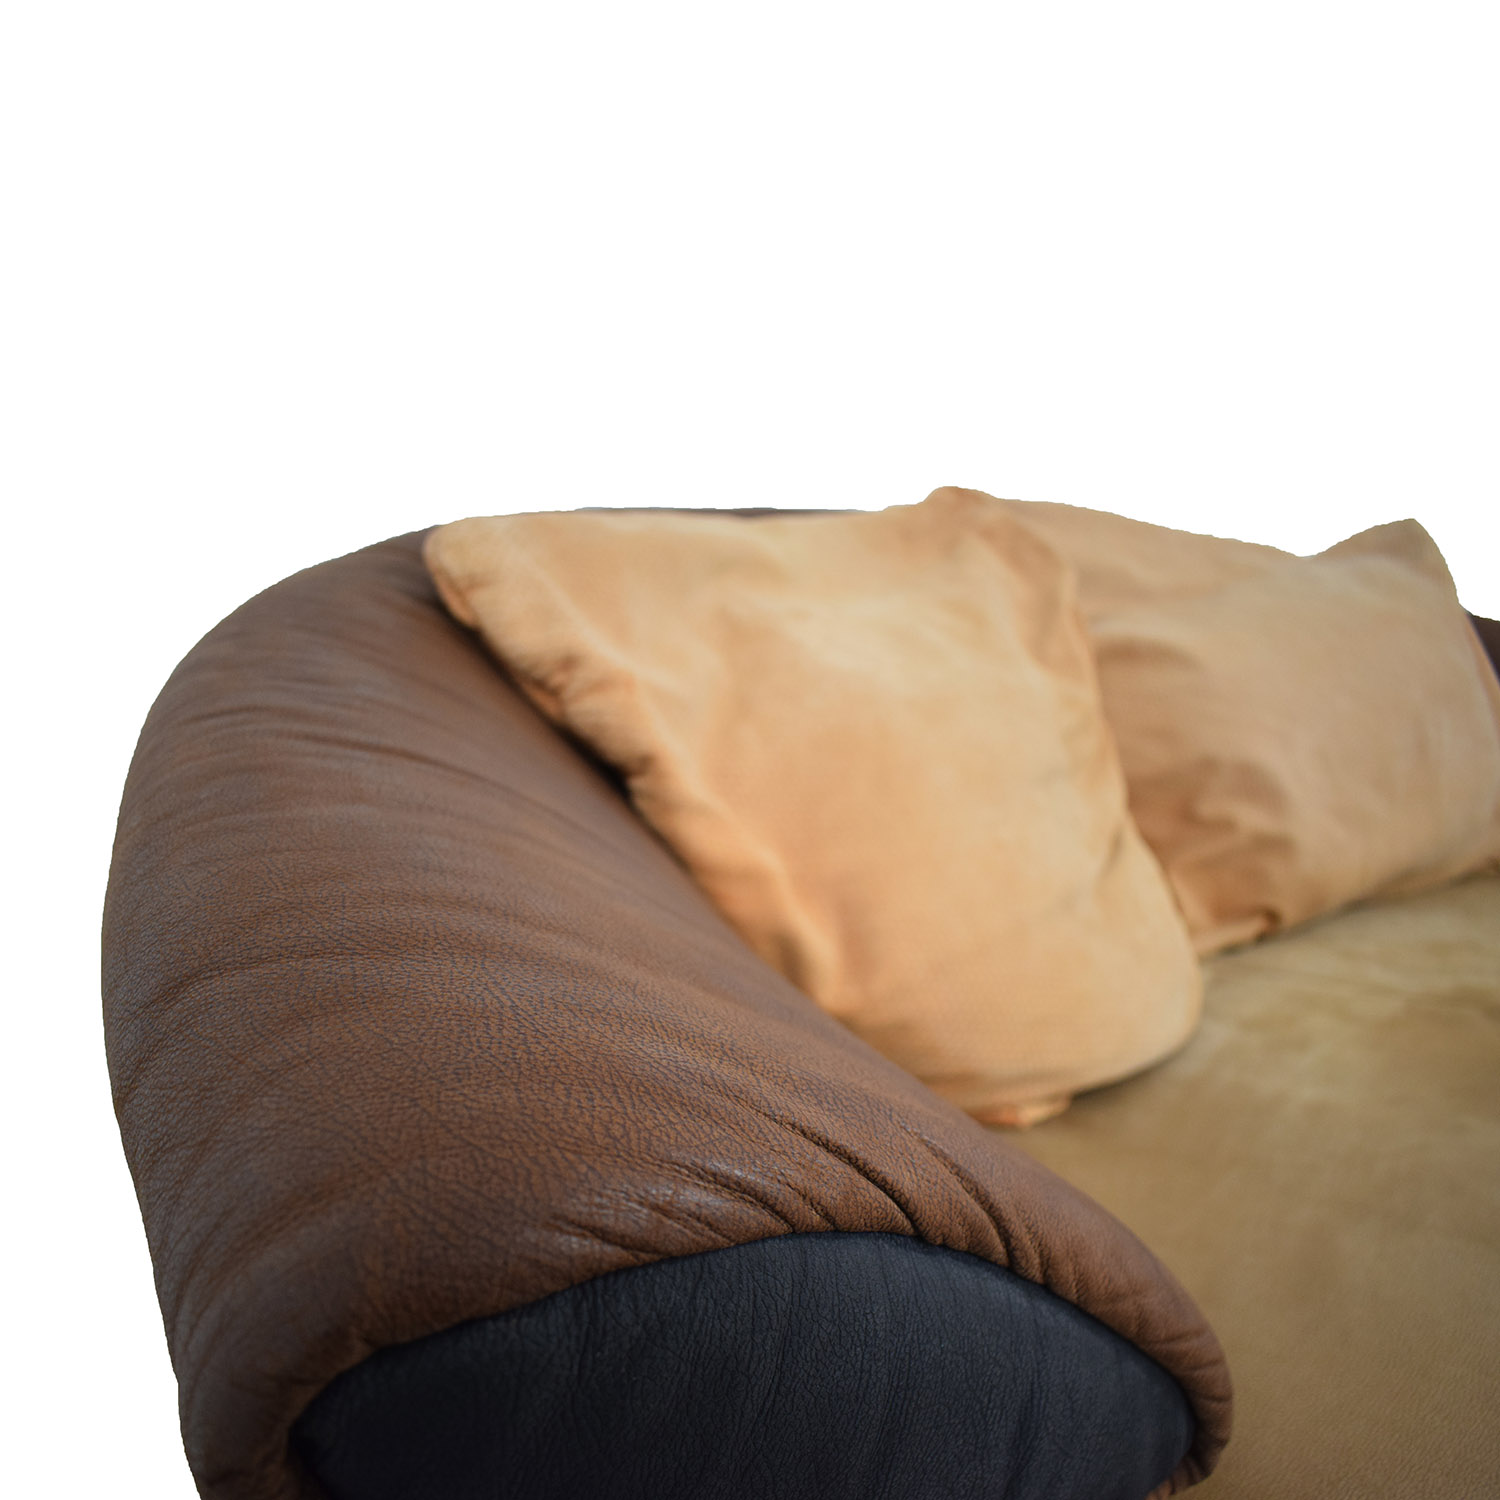 Koinor Koinor Brown Multi-Colored Love Seat brown AND BEIGE